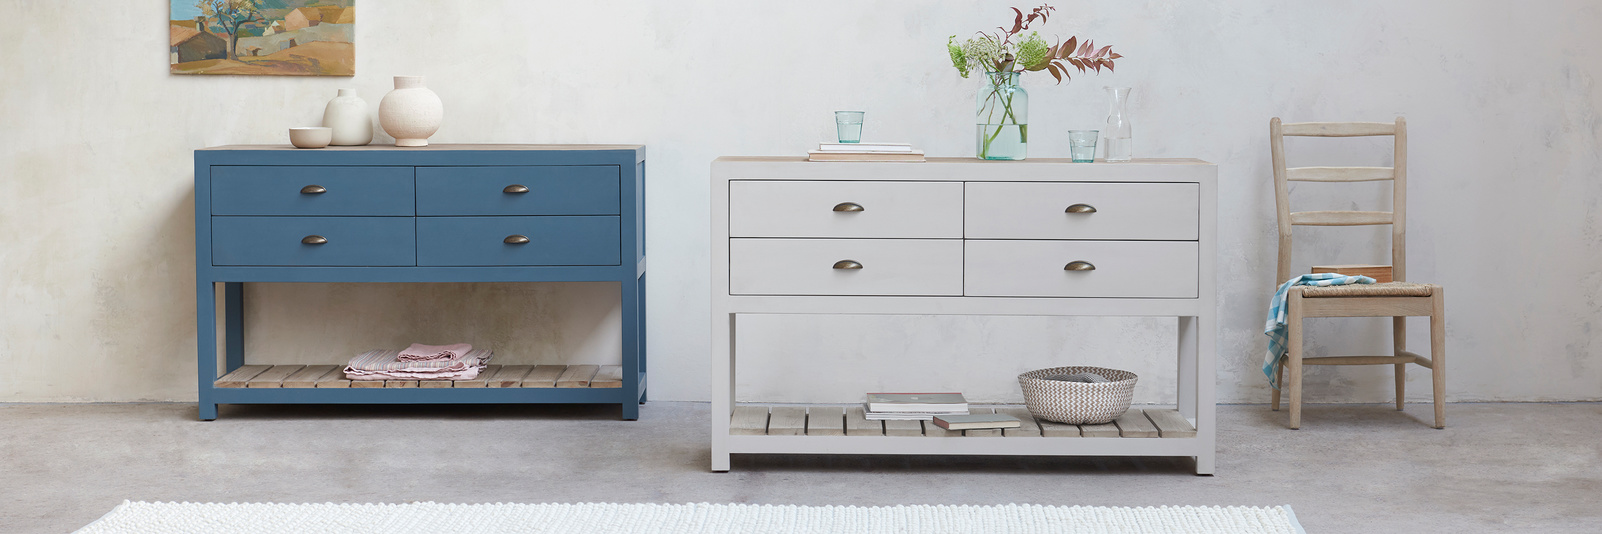 Provender painted wooden sideboard collection